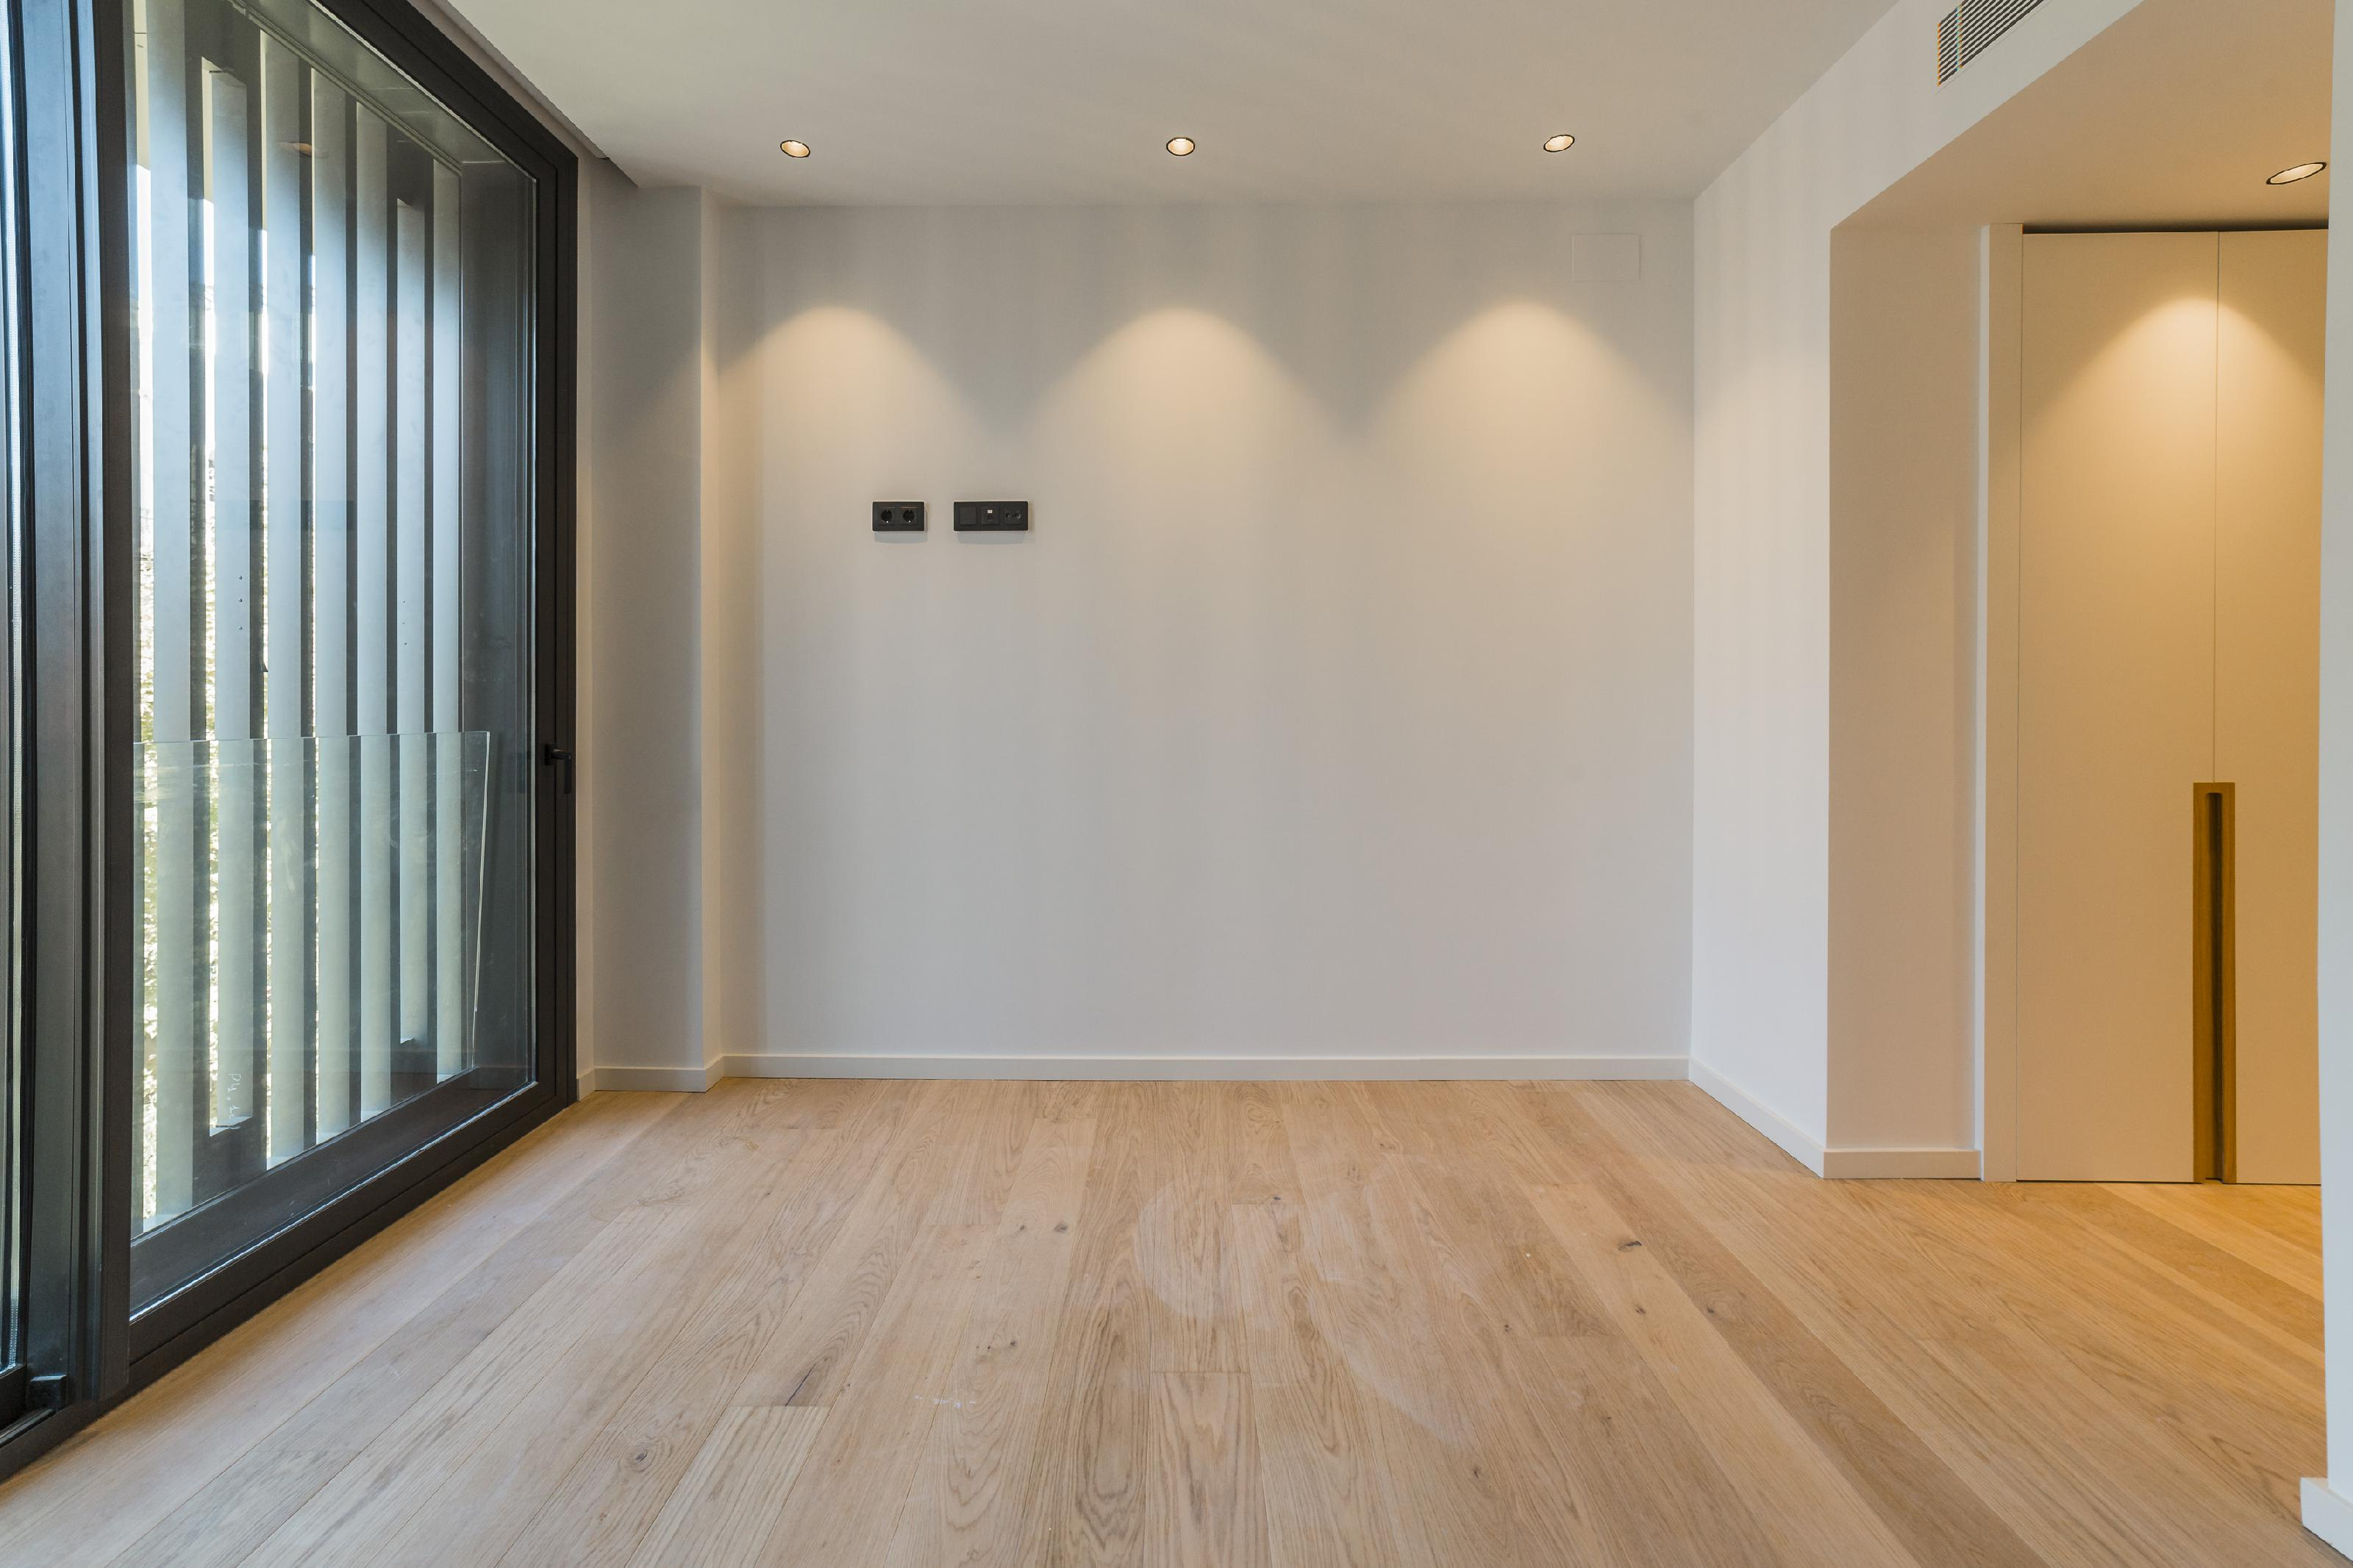 182474 Apartment for sale in Eixample, Old Left Eixample 13